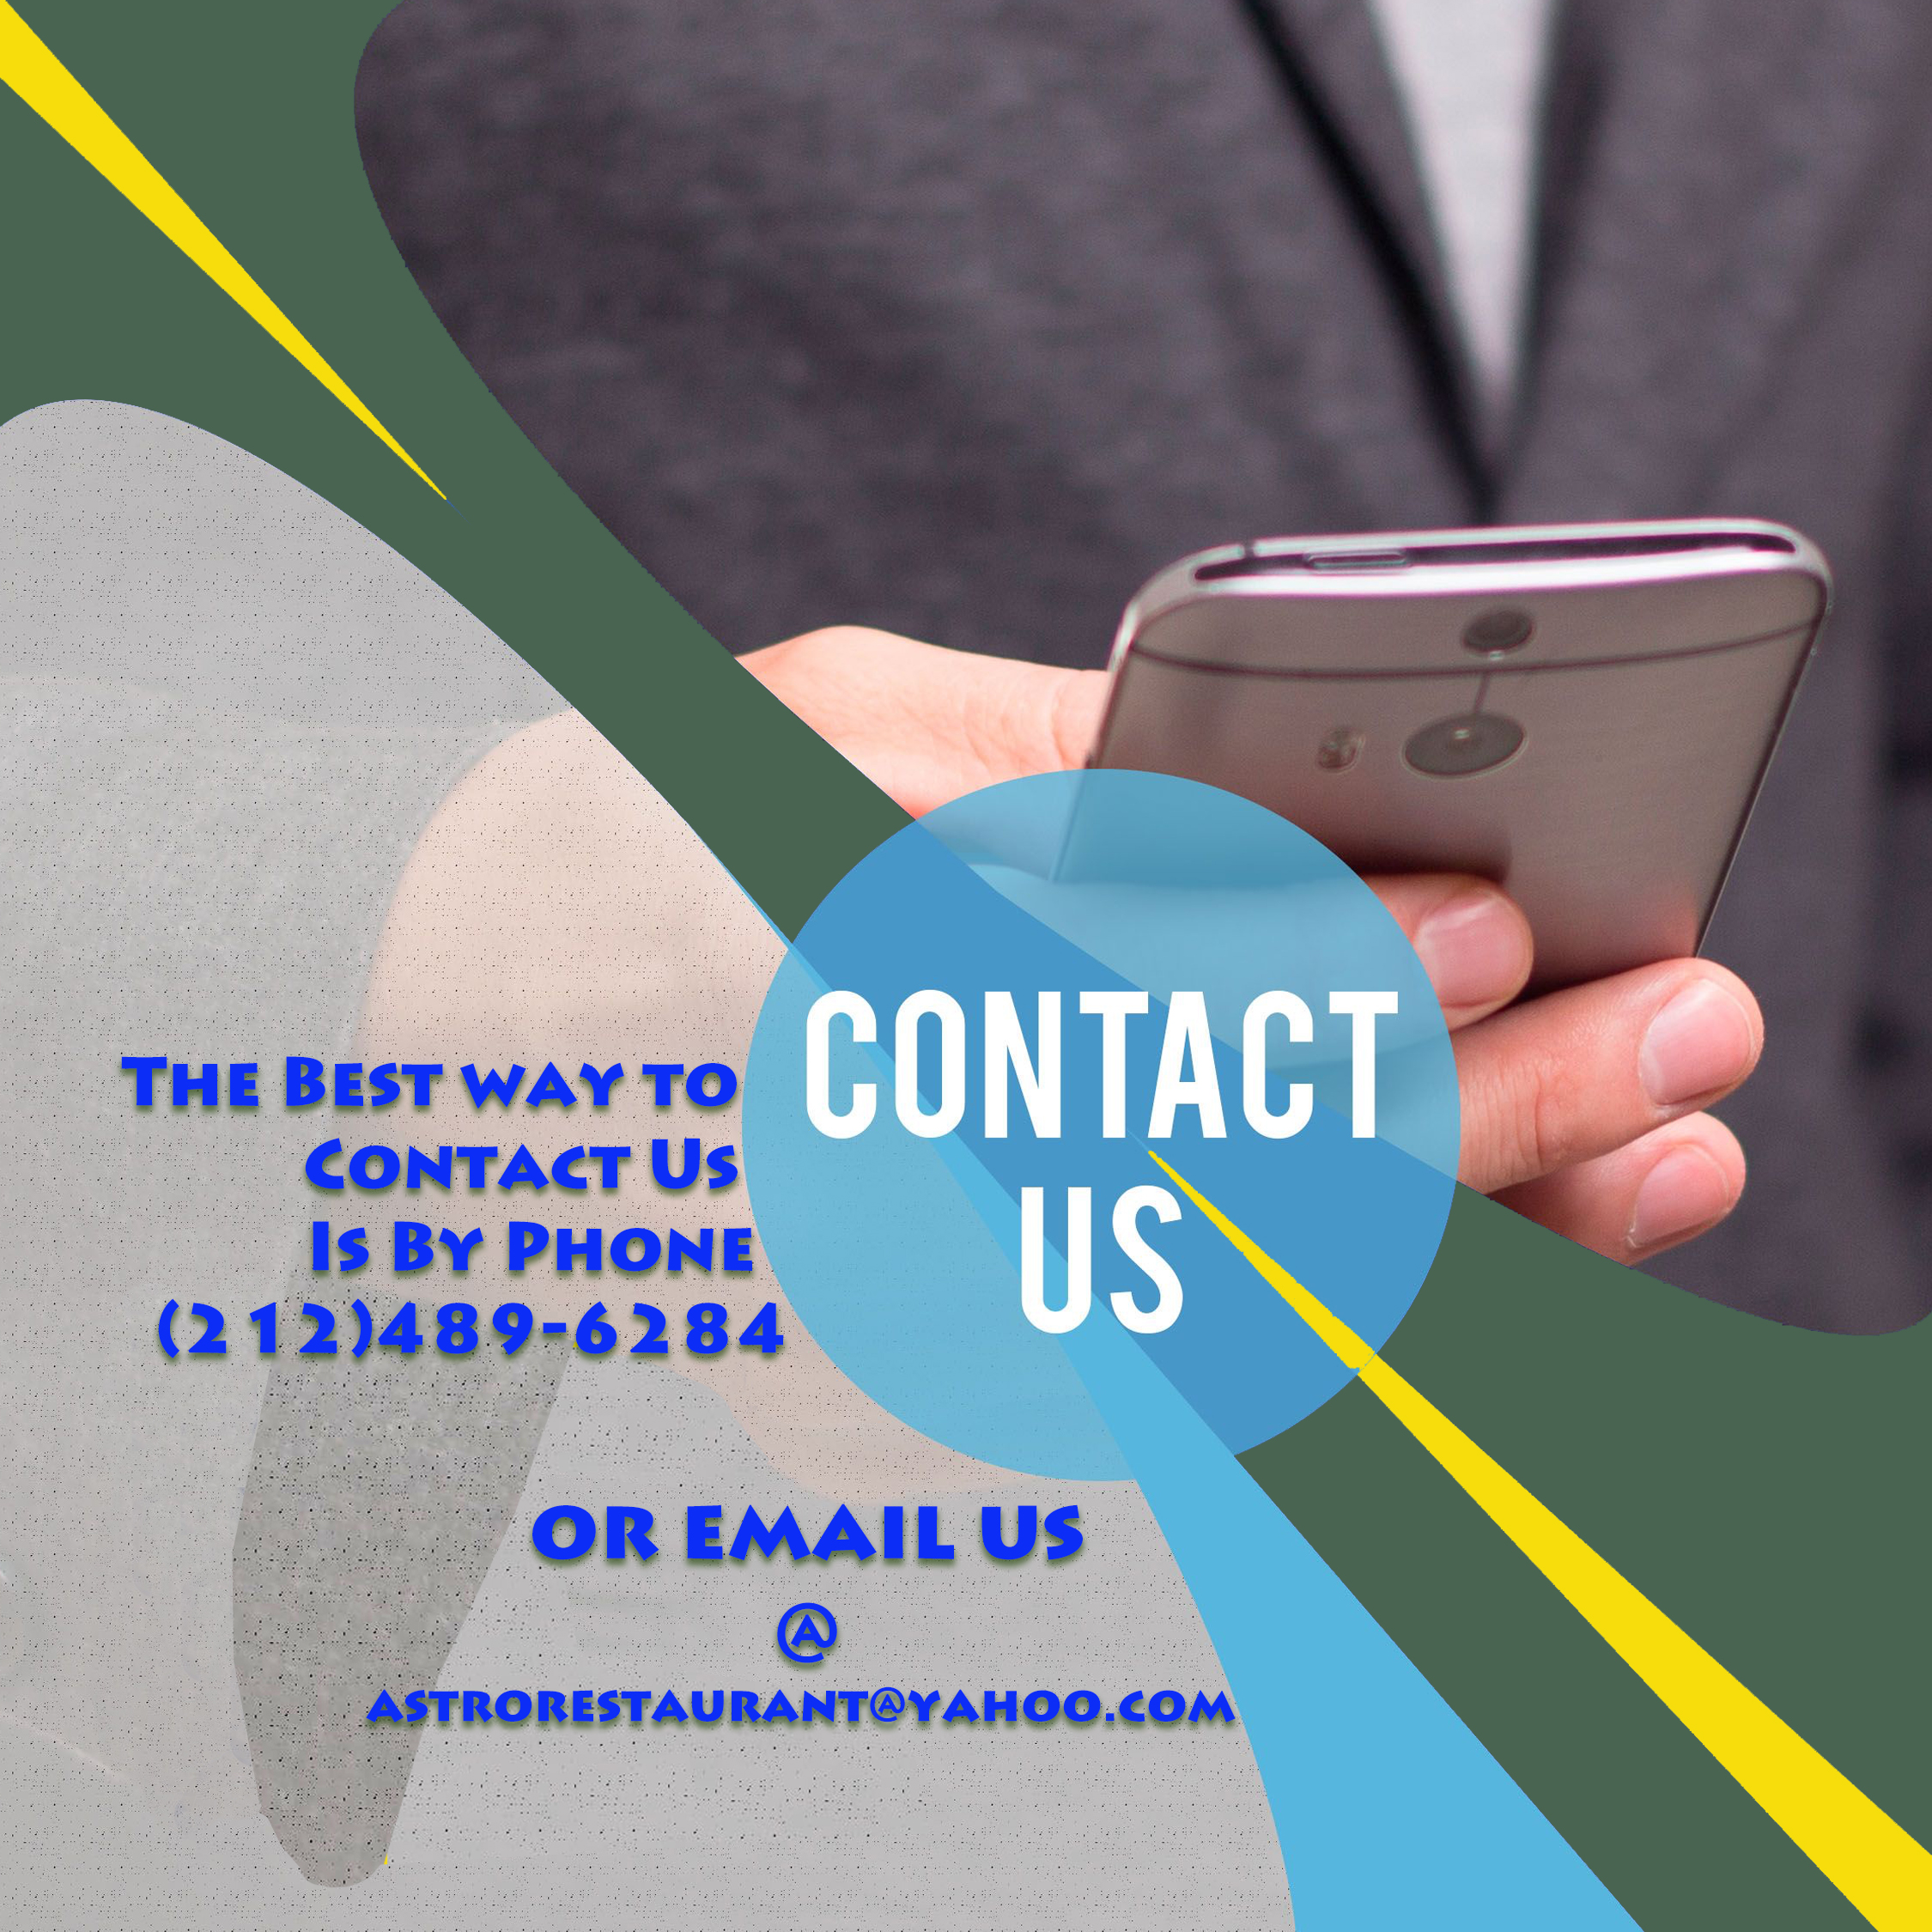 The Best Way to Contact us if by phone at (212) 489-6284 or email us at astrorestaurant@yahoo.com